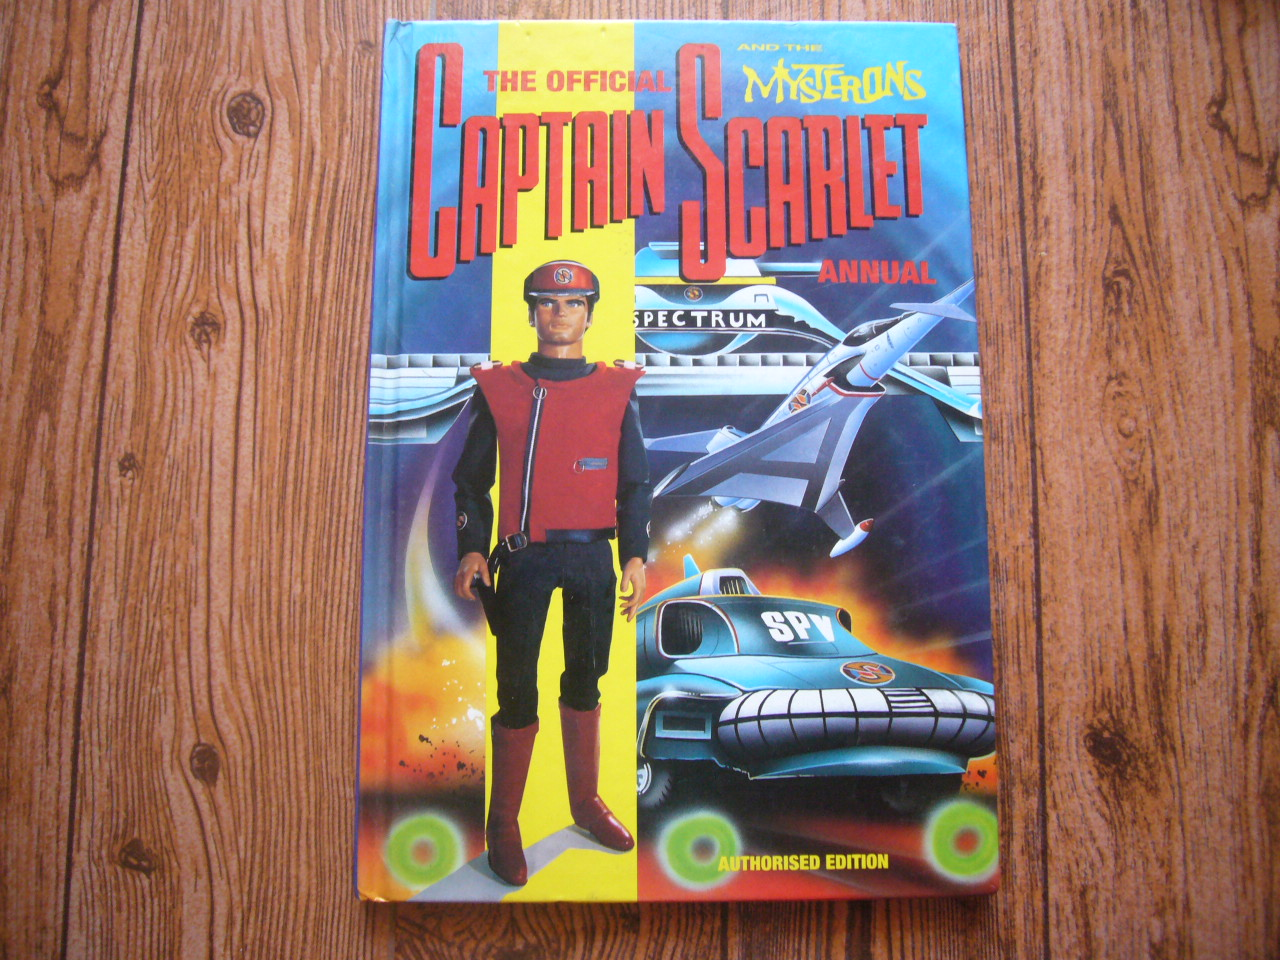 The Official Captain Scarlet and the Mysterons Annual (1993)